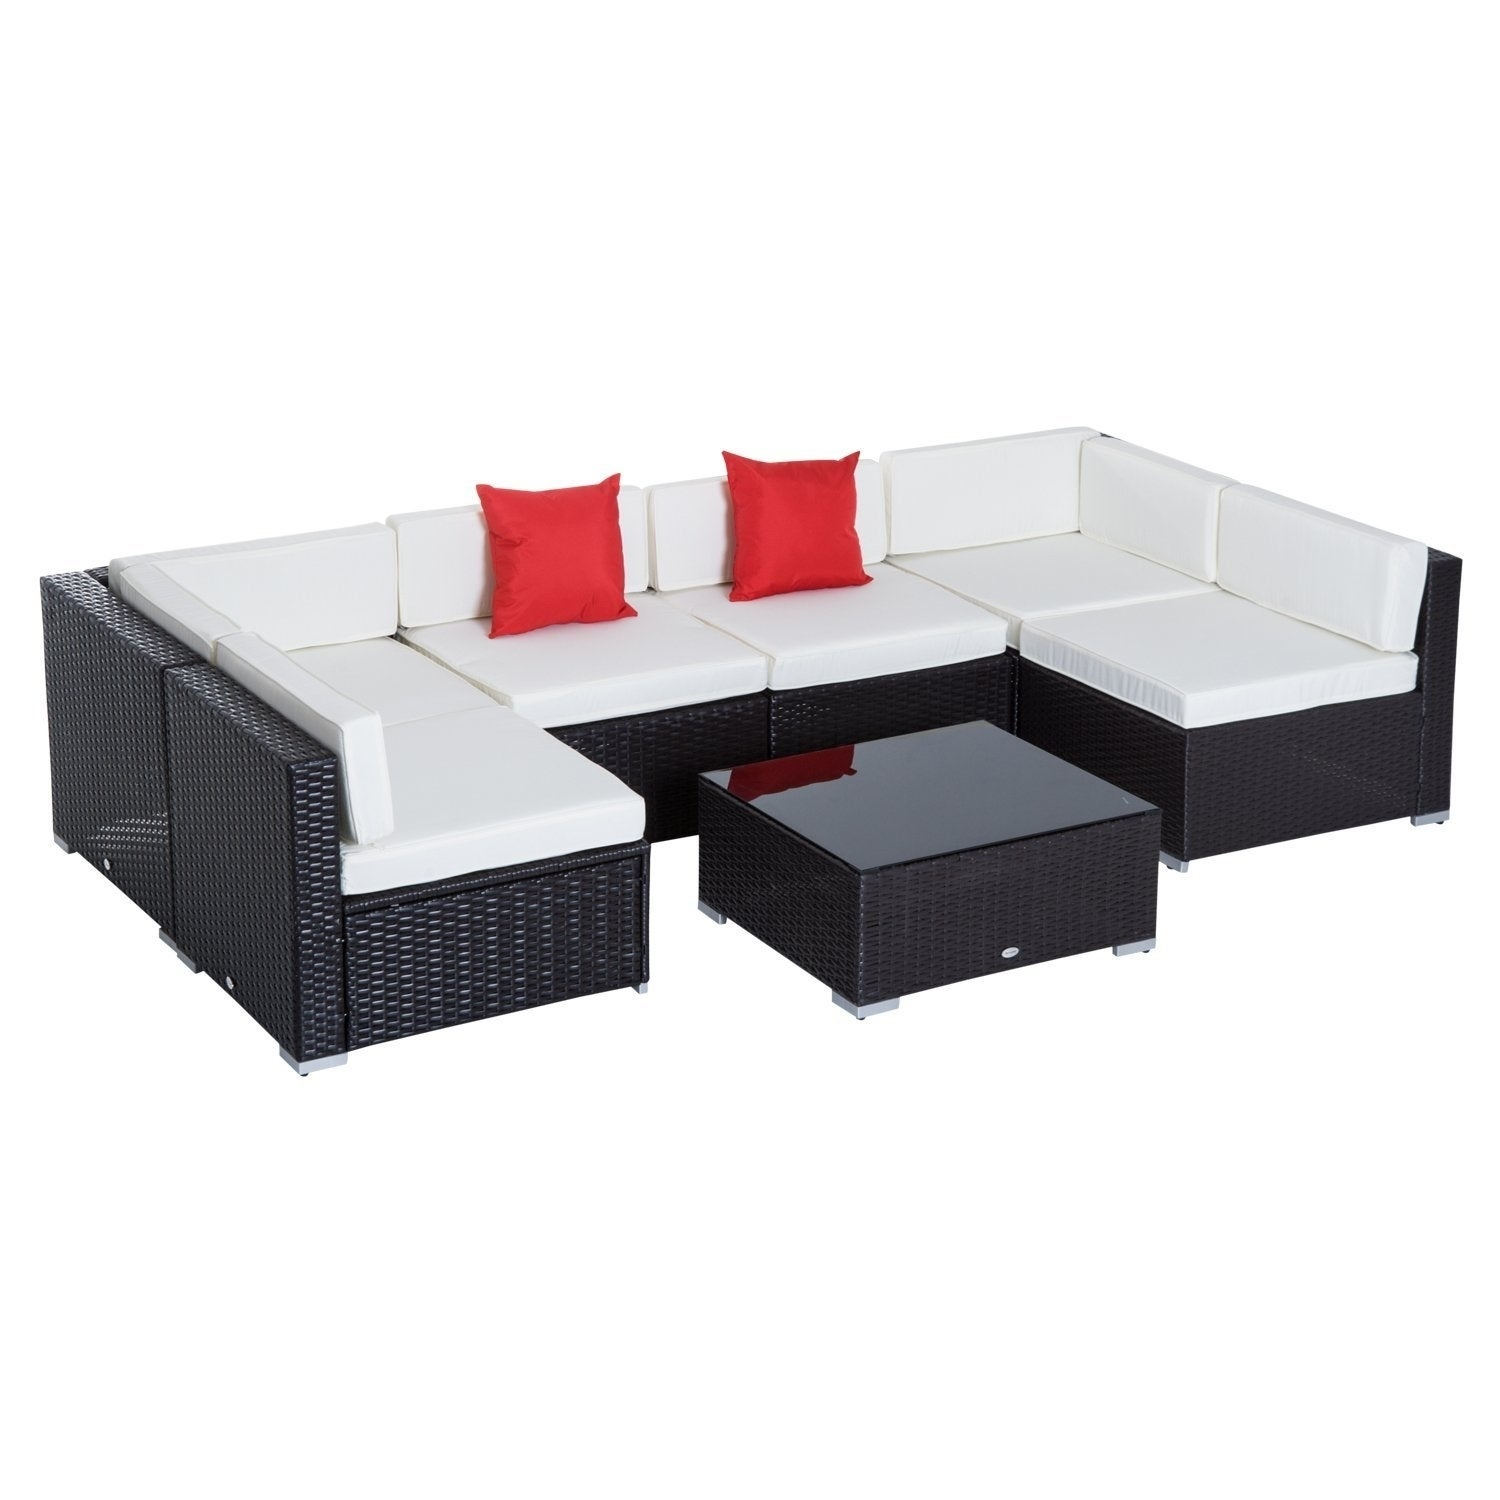 Outsunny 7 Piece Set Rattan Sofa Luxury Modular Conversation Outdoor  Furniture